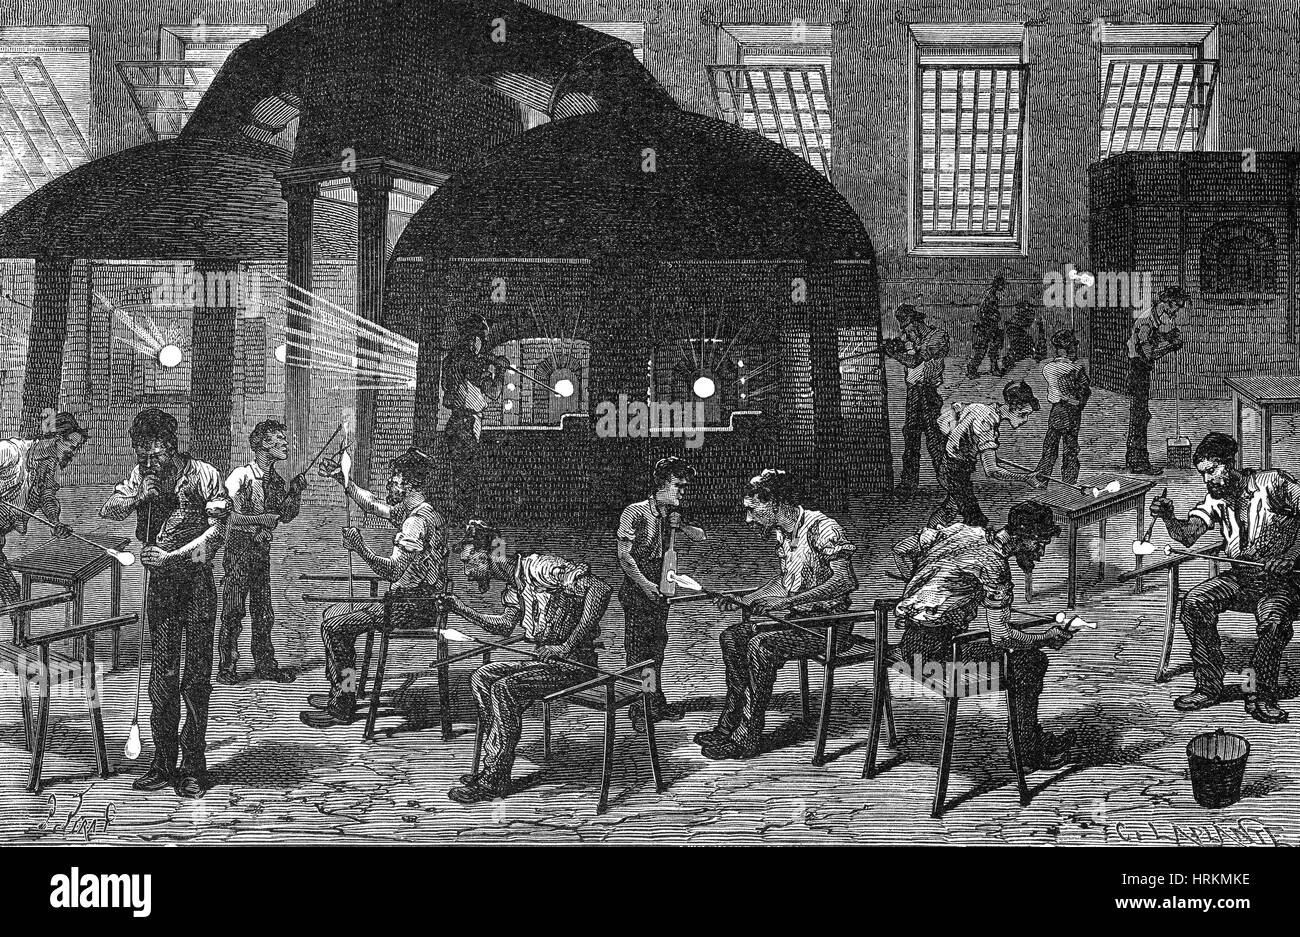 Glassblowing Factory, 19th Century - Stock Image